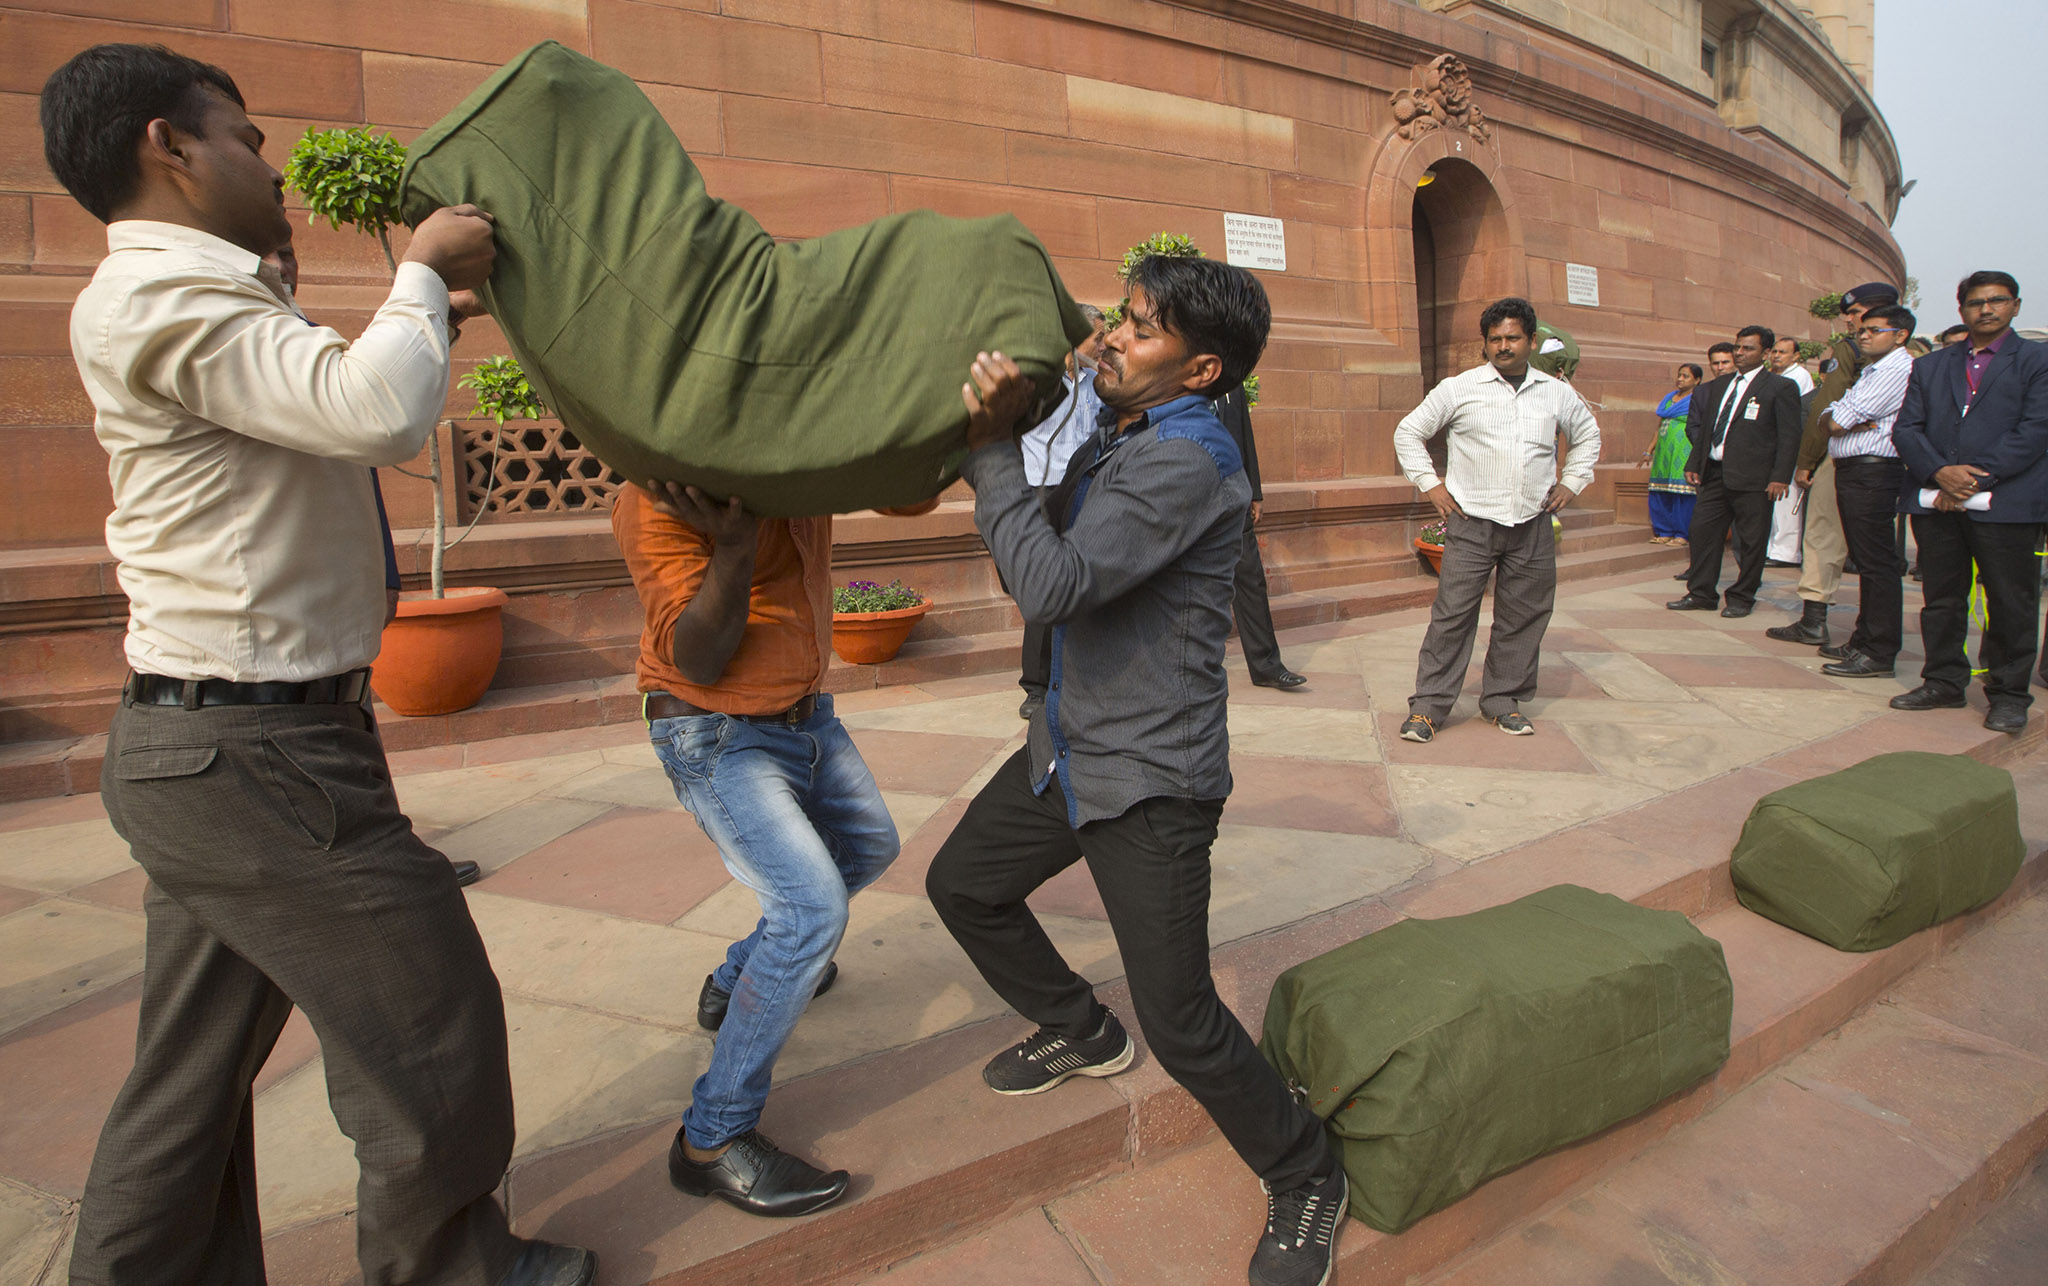 Indian workers carry a bag containing copies of the federal budget for the year 2016-17, that will be distributed to lawmakers at the parliament house in New Delhi, India.